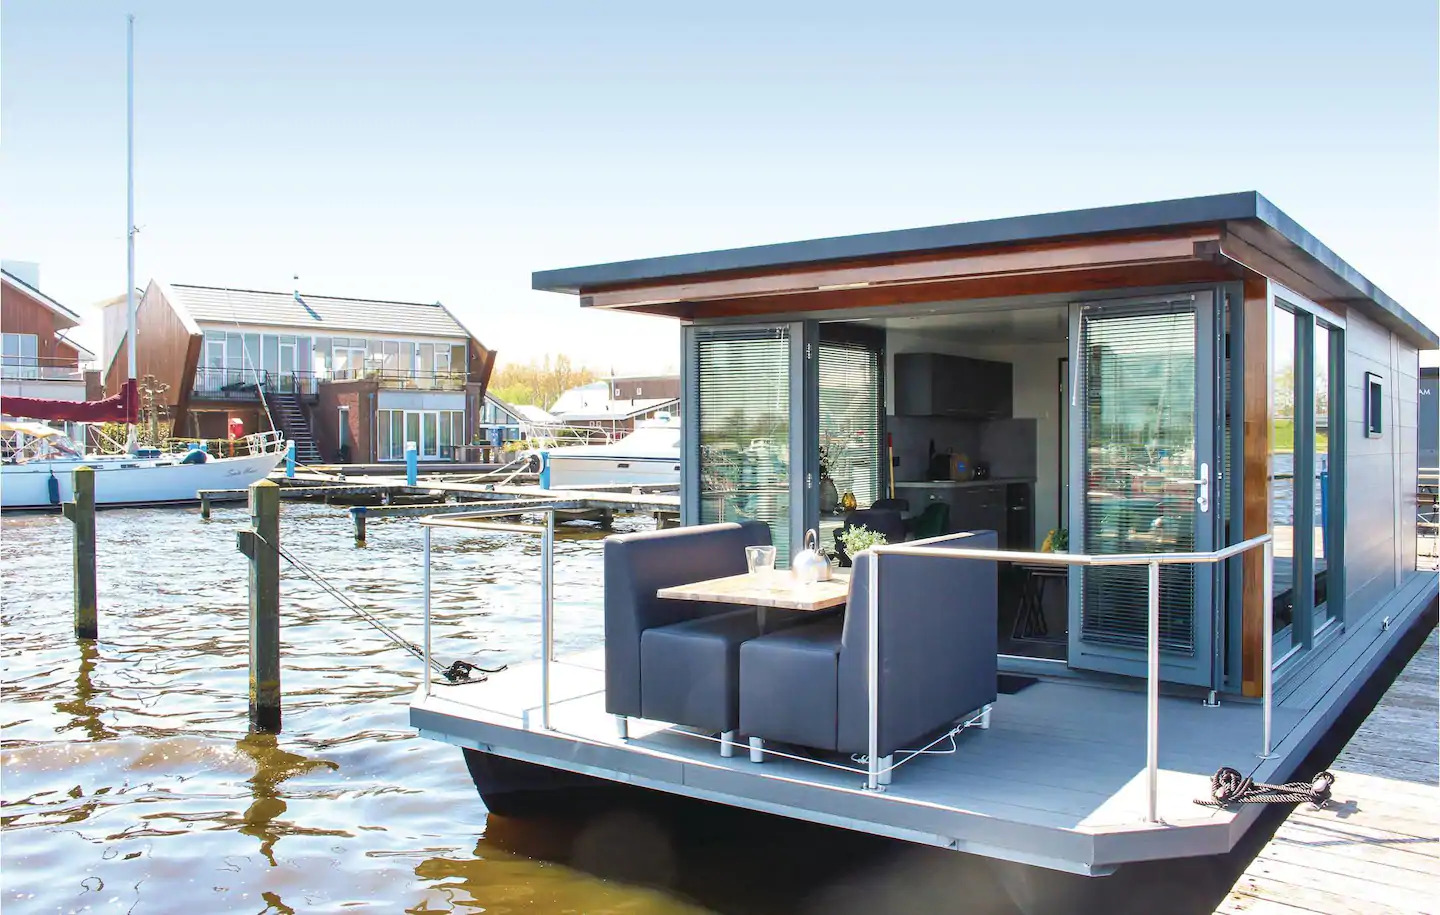 Airbnb Hausboot in Amsterdam